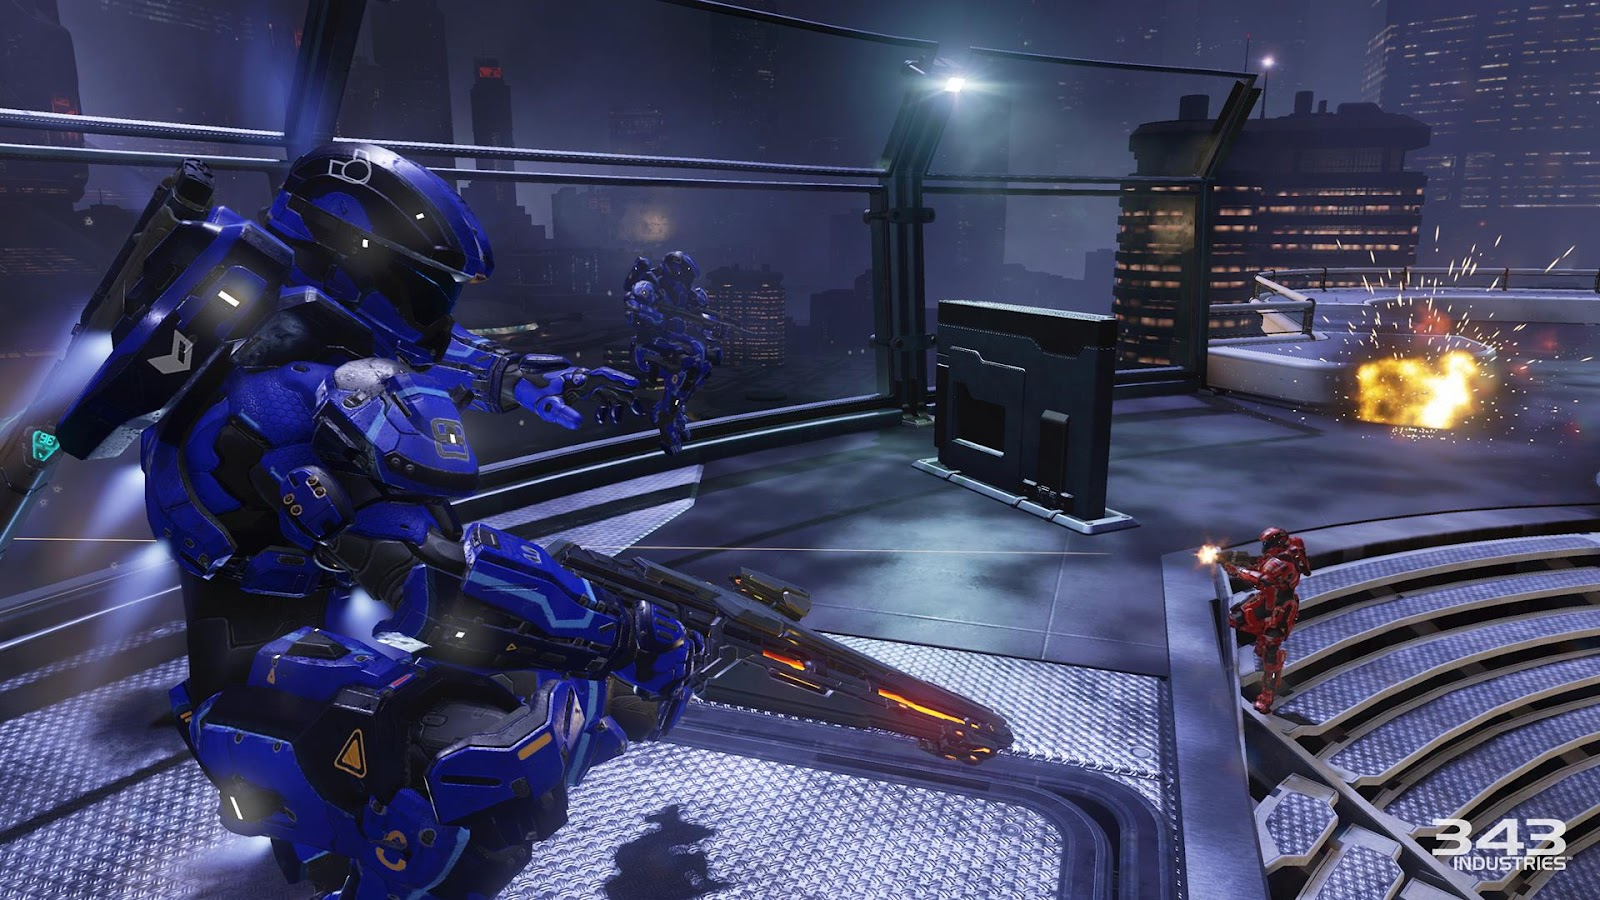 Halo-5-Arena-REQ-bundle.jpg